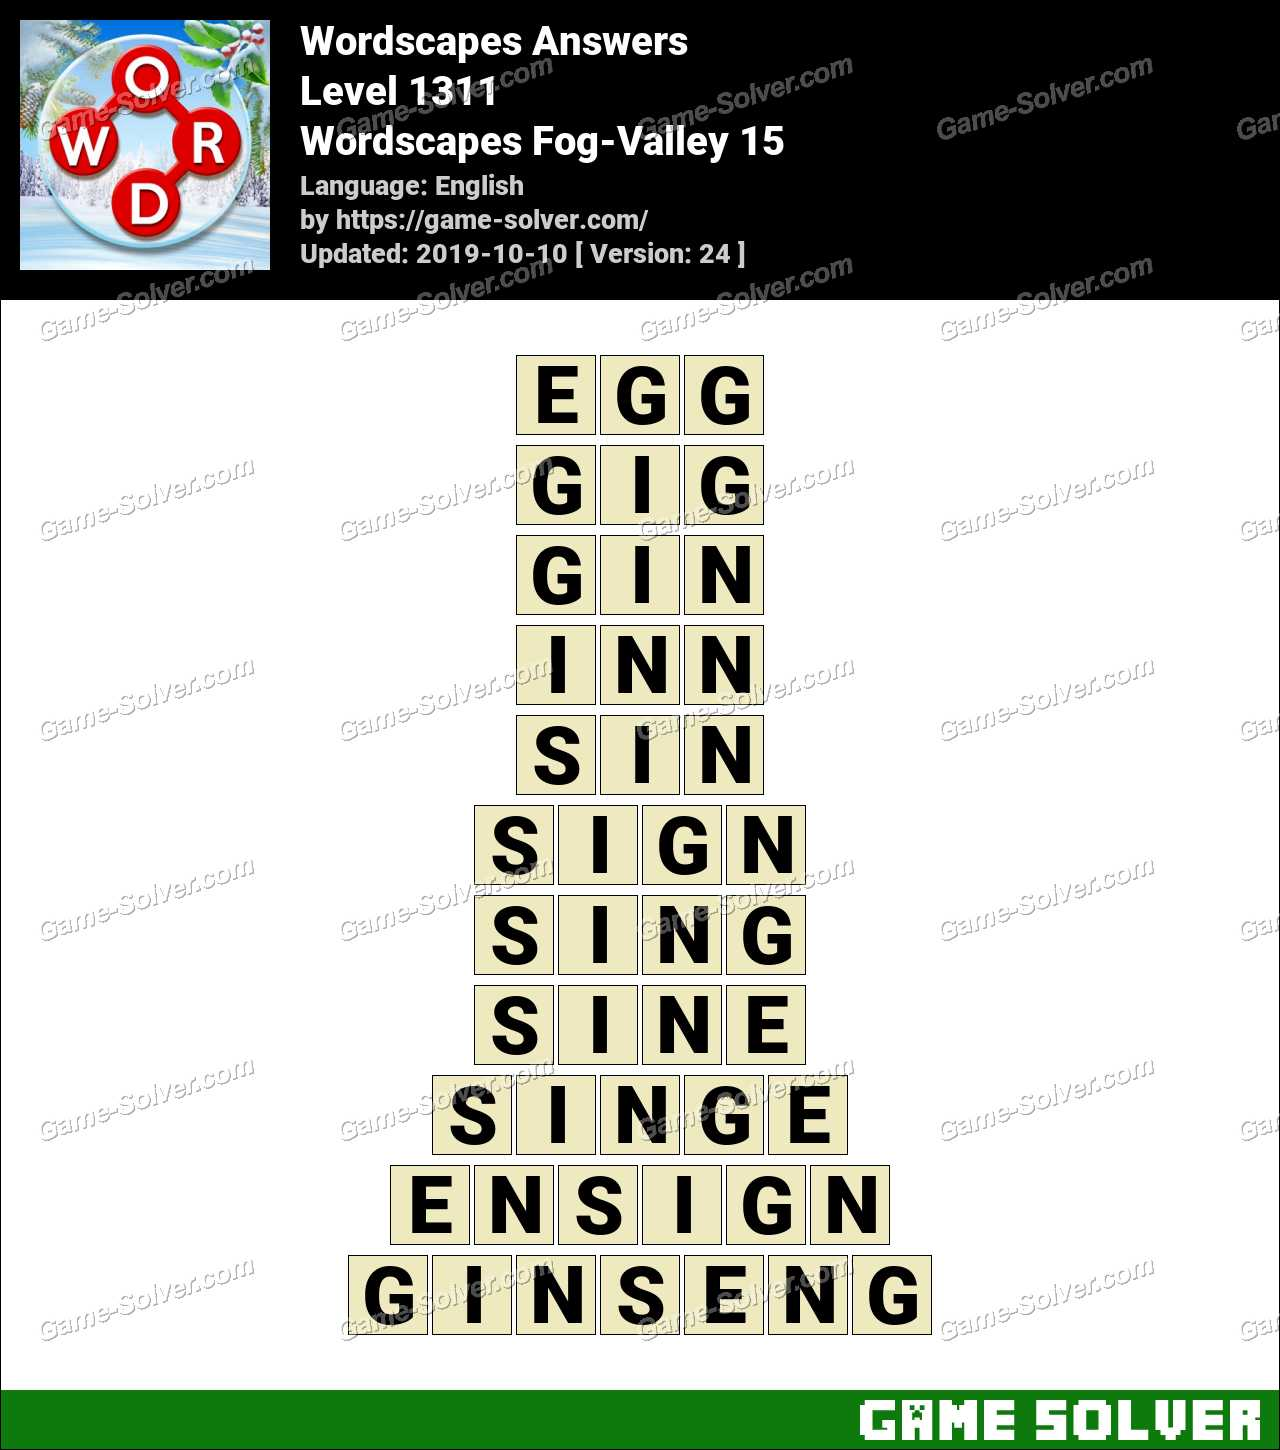 Wordscapes Fog-Valley 15 Answers